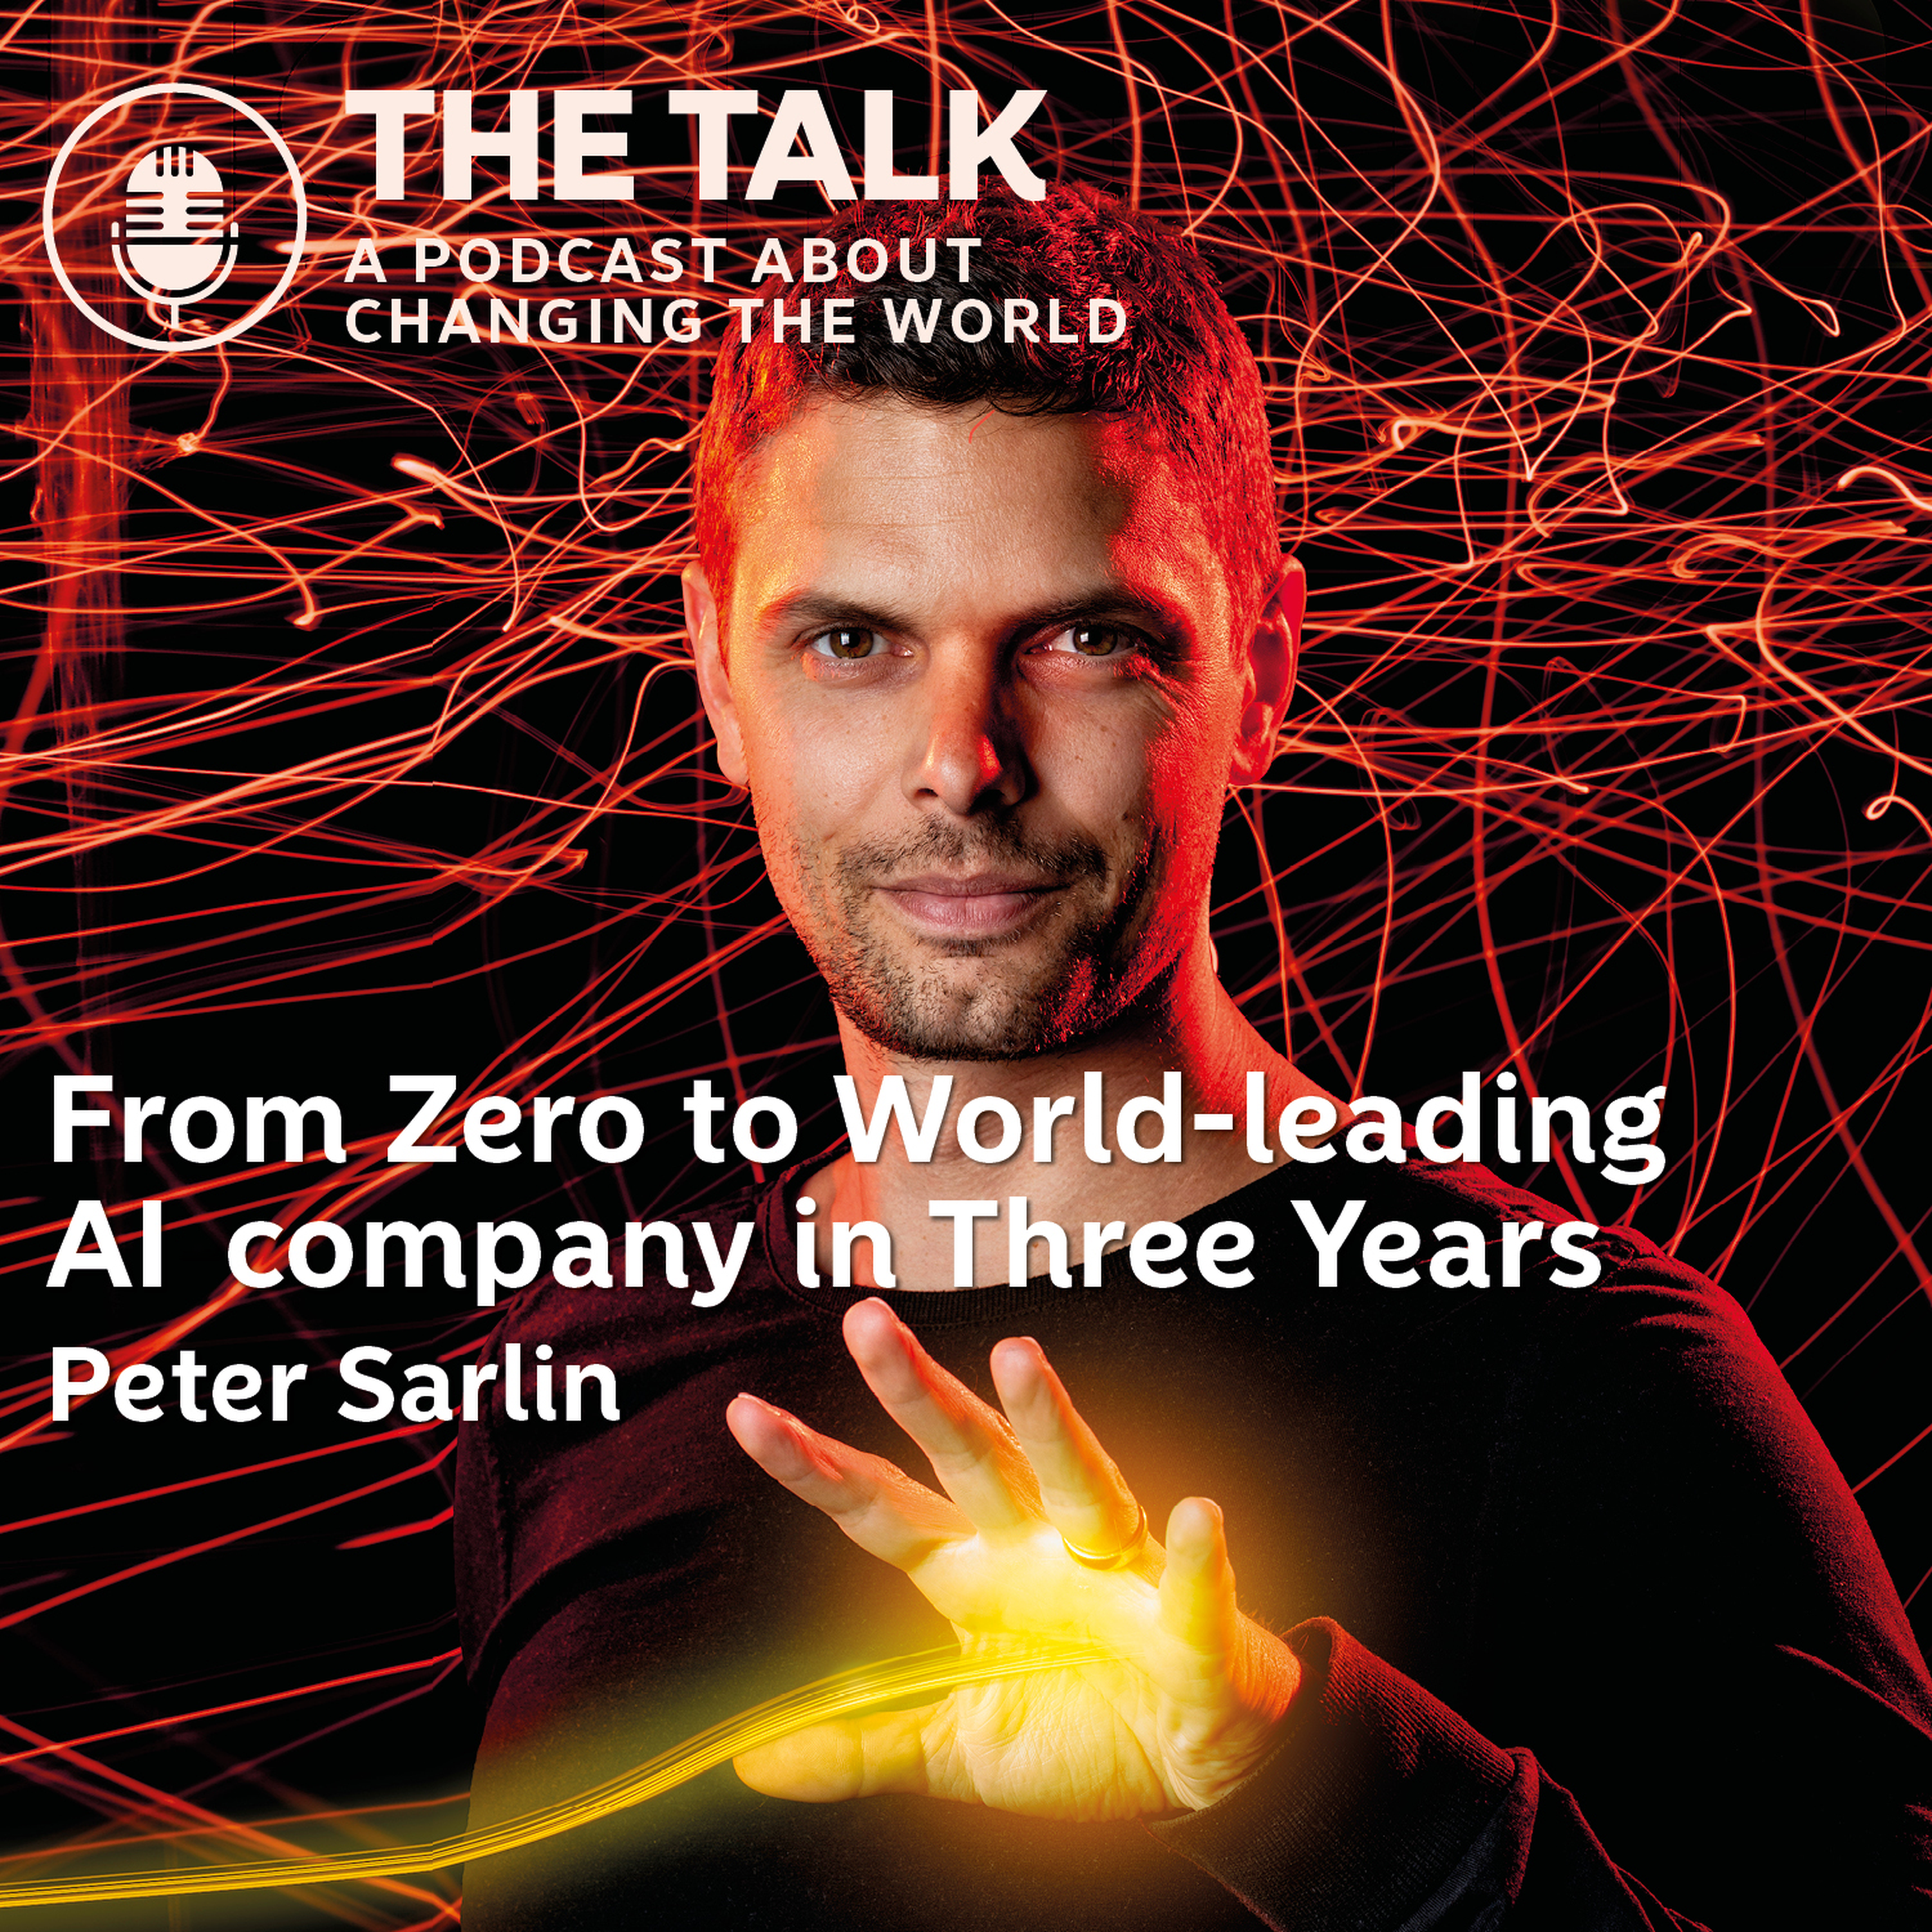 From Zero to World-leading AI company in Three Years with SILO AI CEO Peter Sarlin